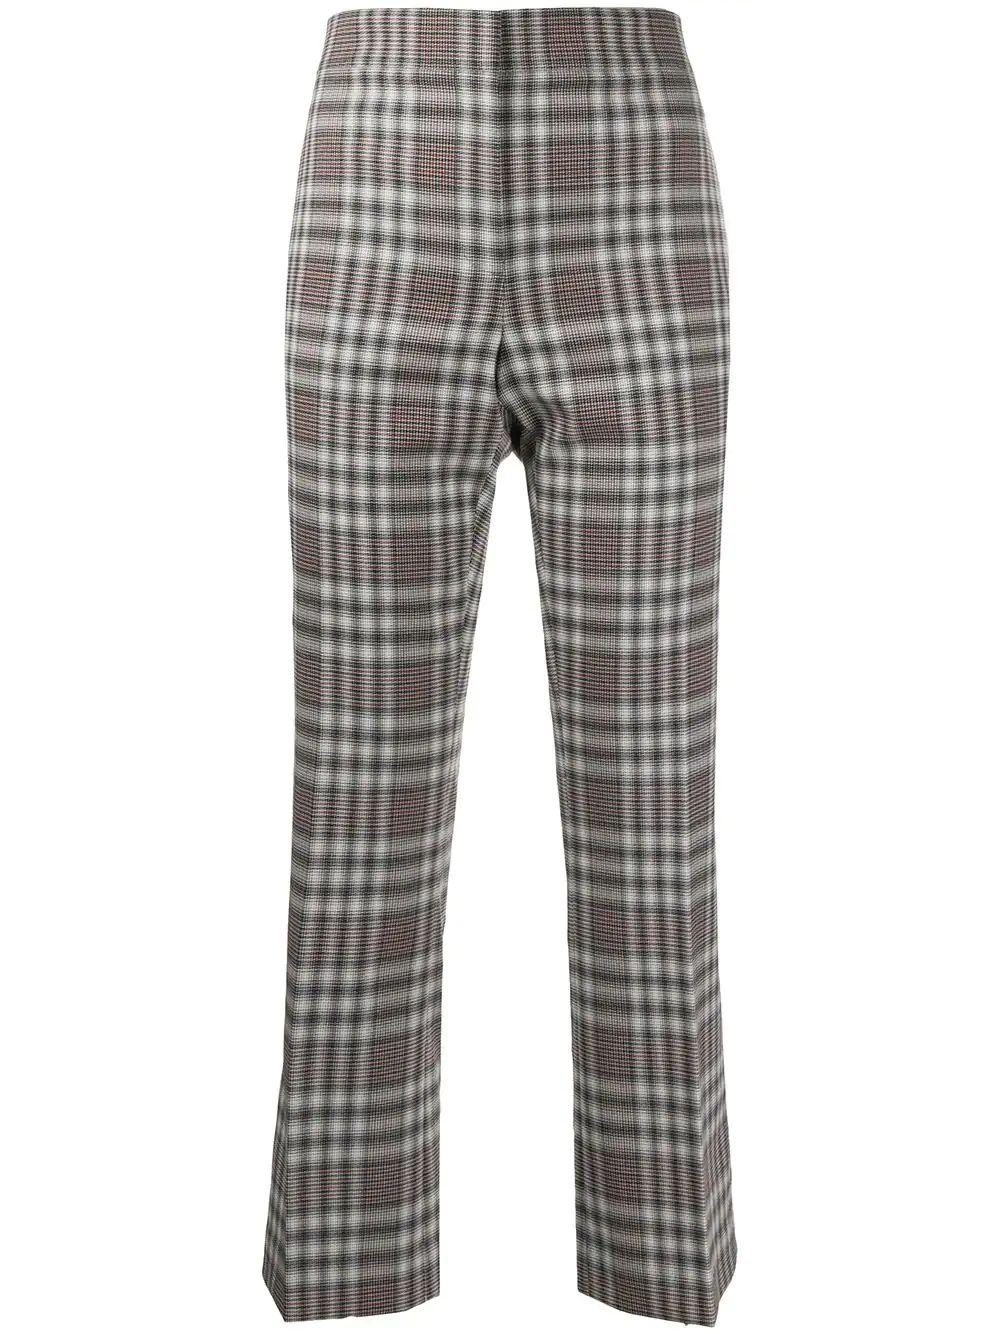 Plaid Crop Flare Kick Pant Item # K0601209